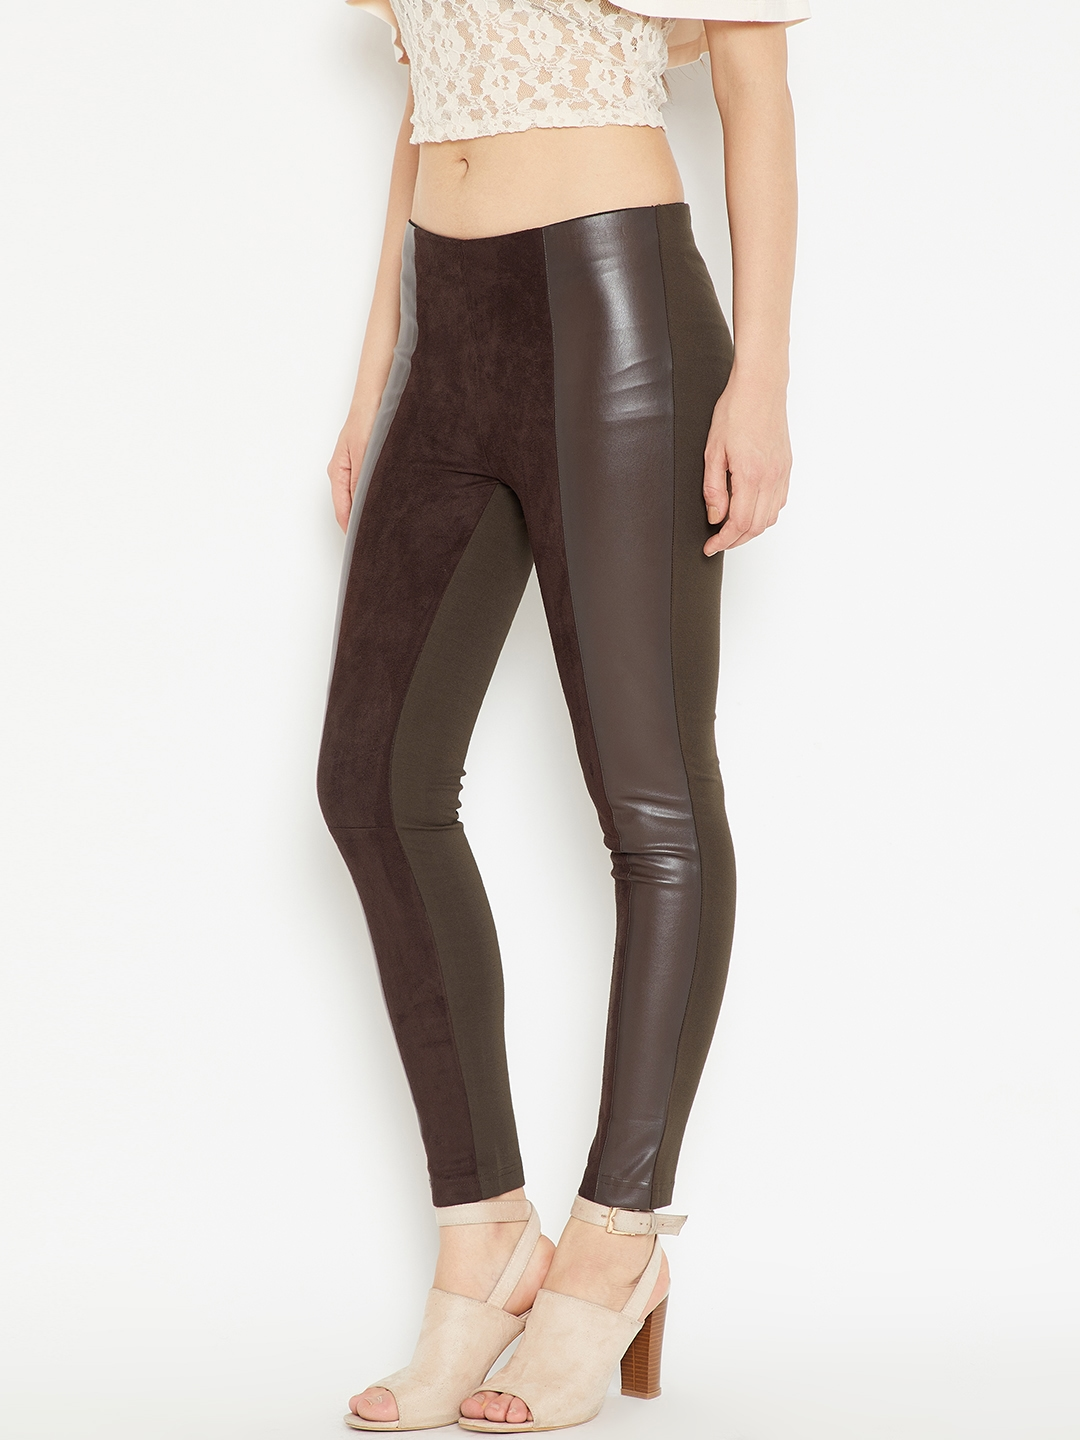 5e2388c5d20413 Buy Madame Brown Jeggings - Jeggings for Women 5661546 | Myntra